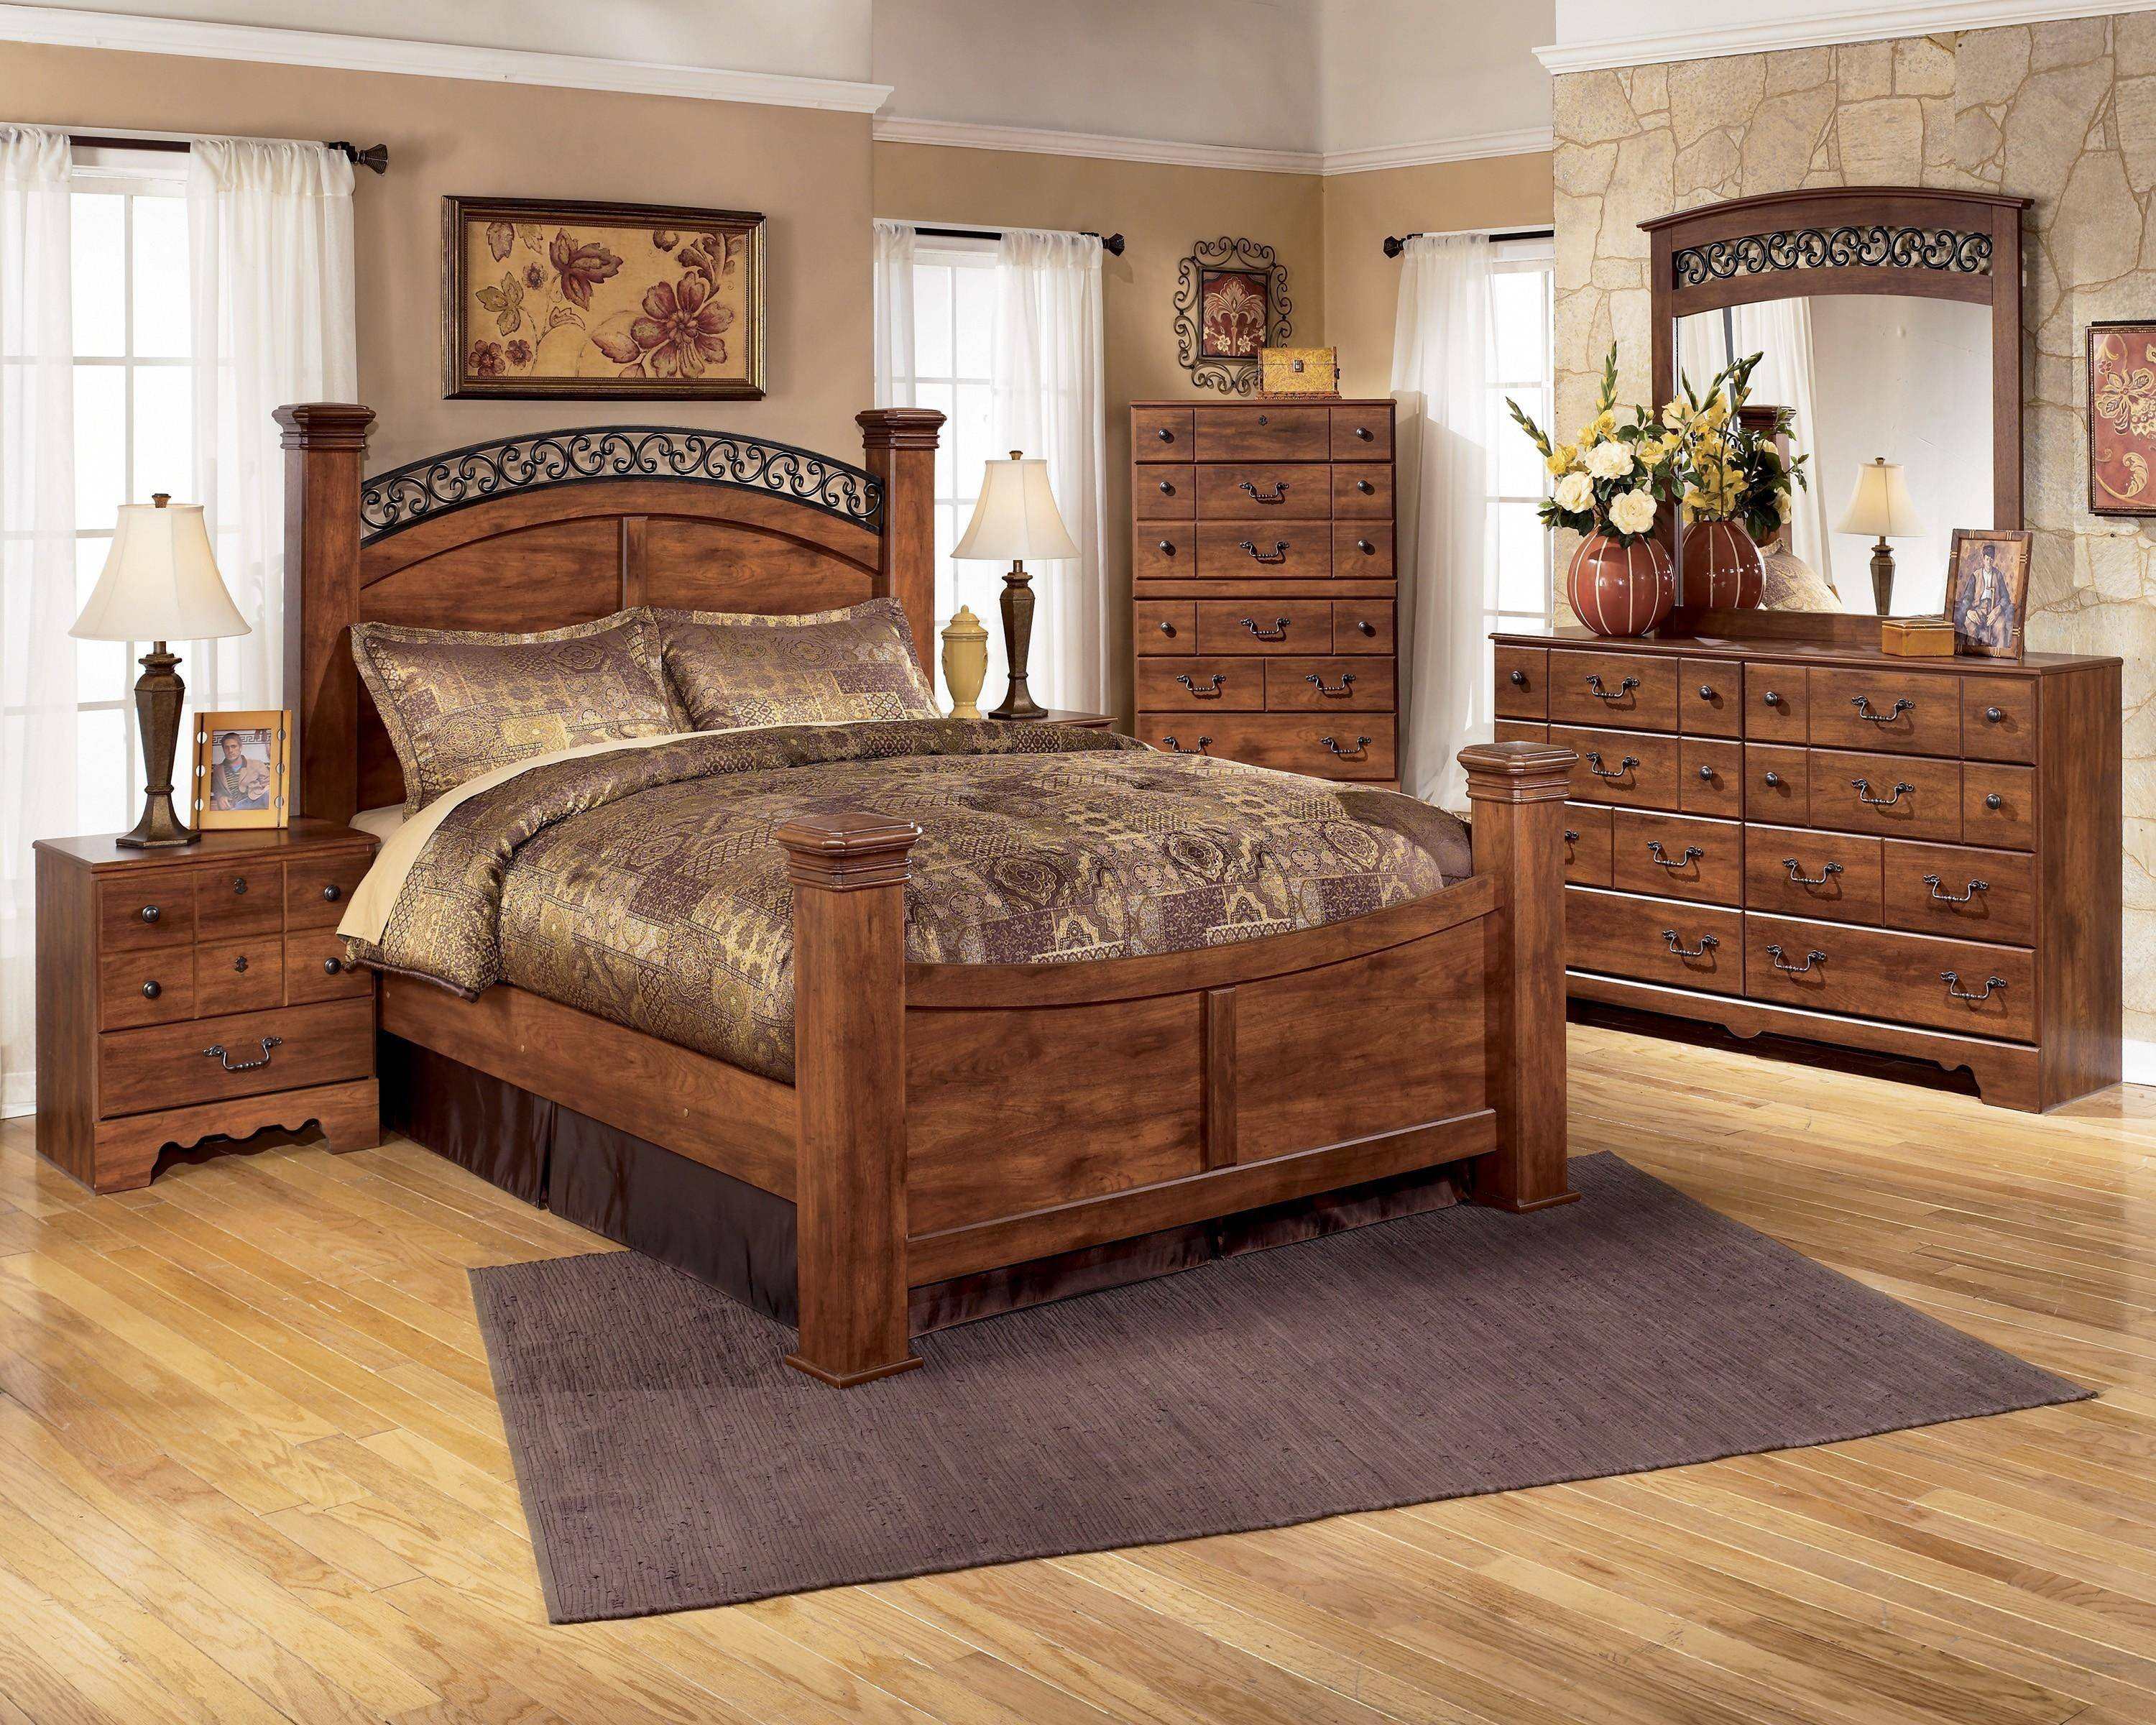 King Size Poster Bedroom Set Lovely ashley Timberline B258 King Size Poster Bedroom Set 6pcs In